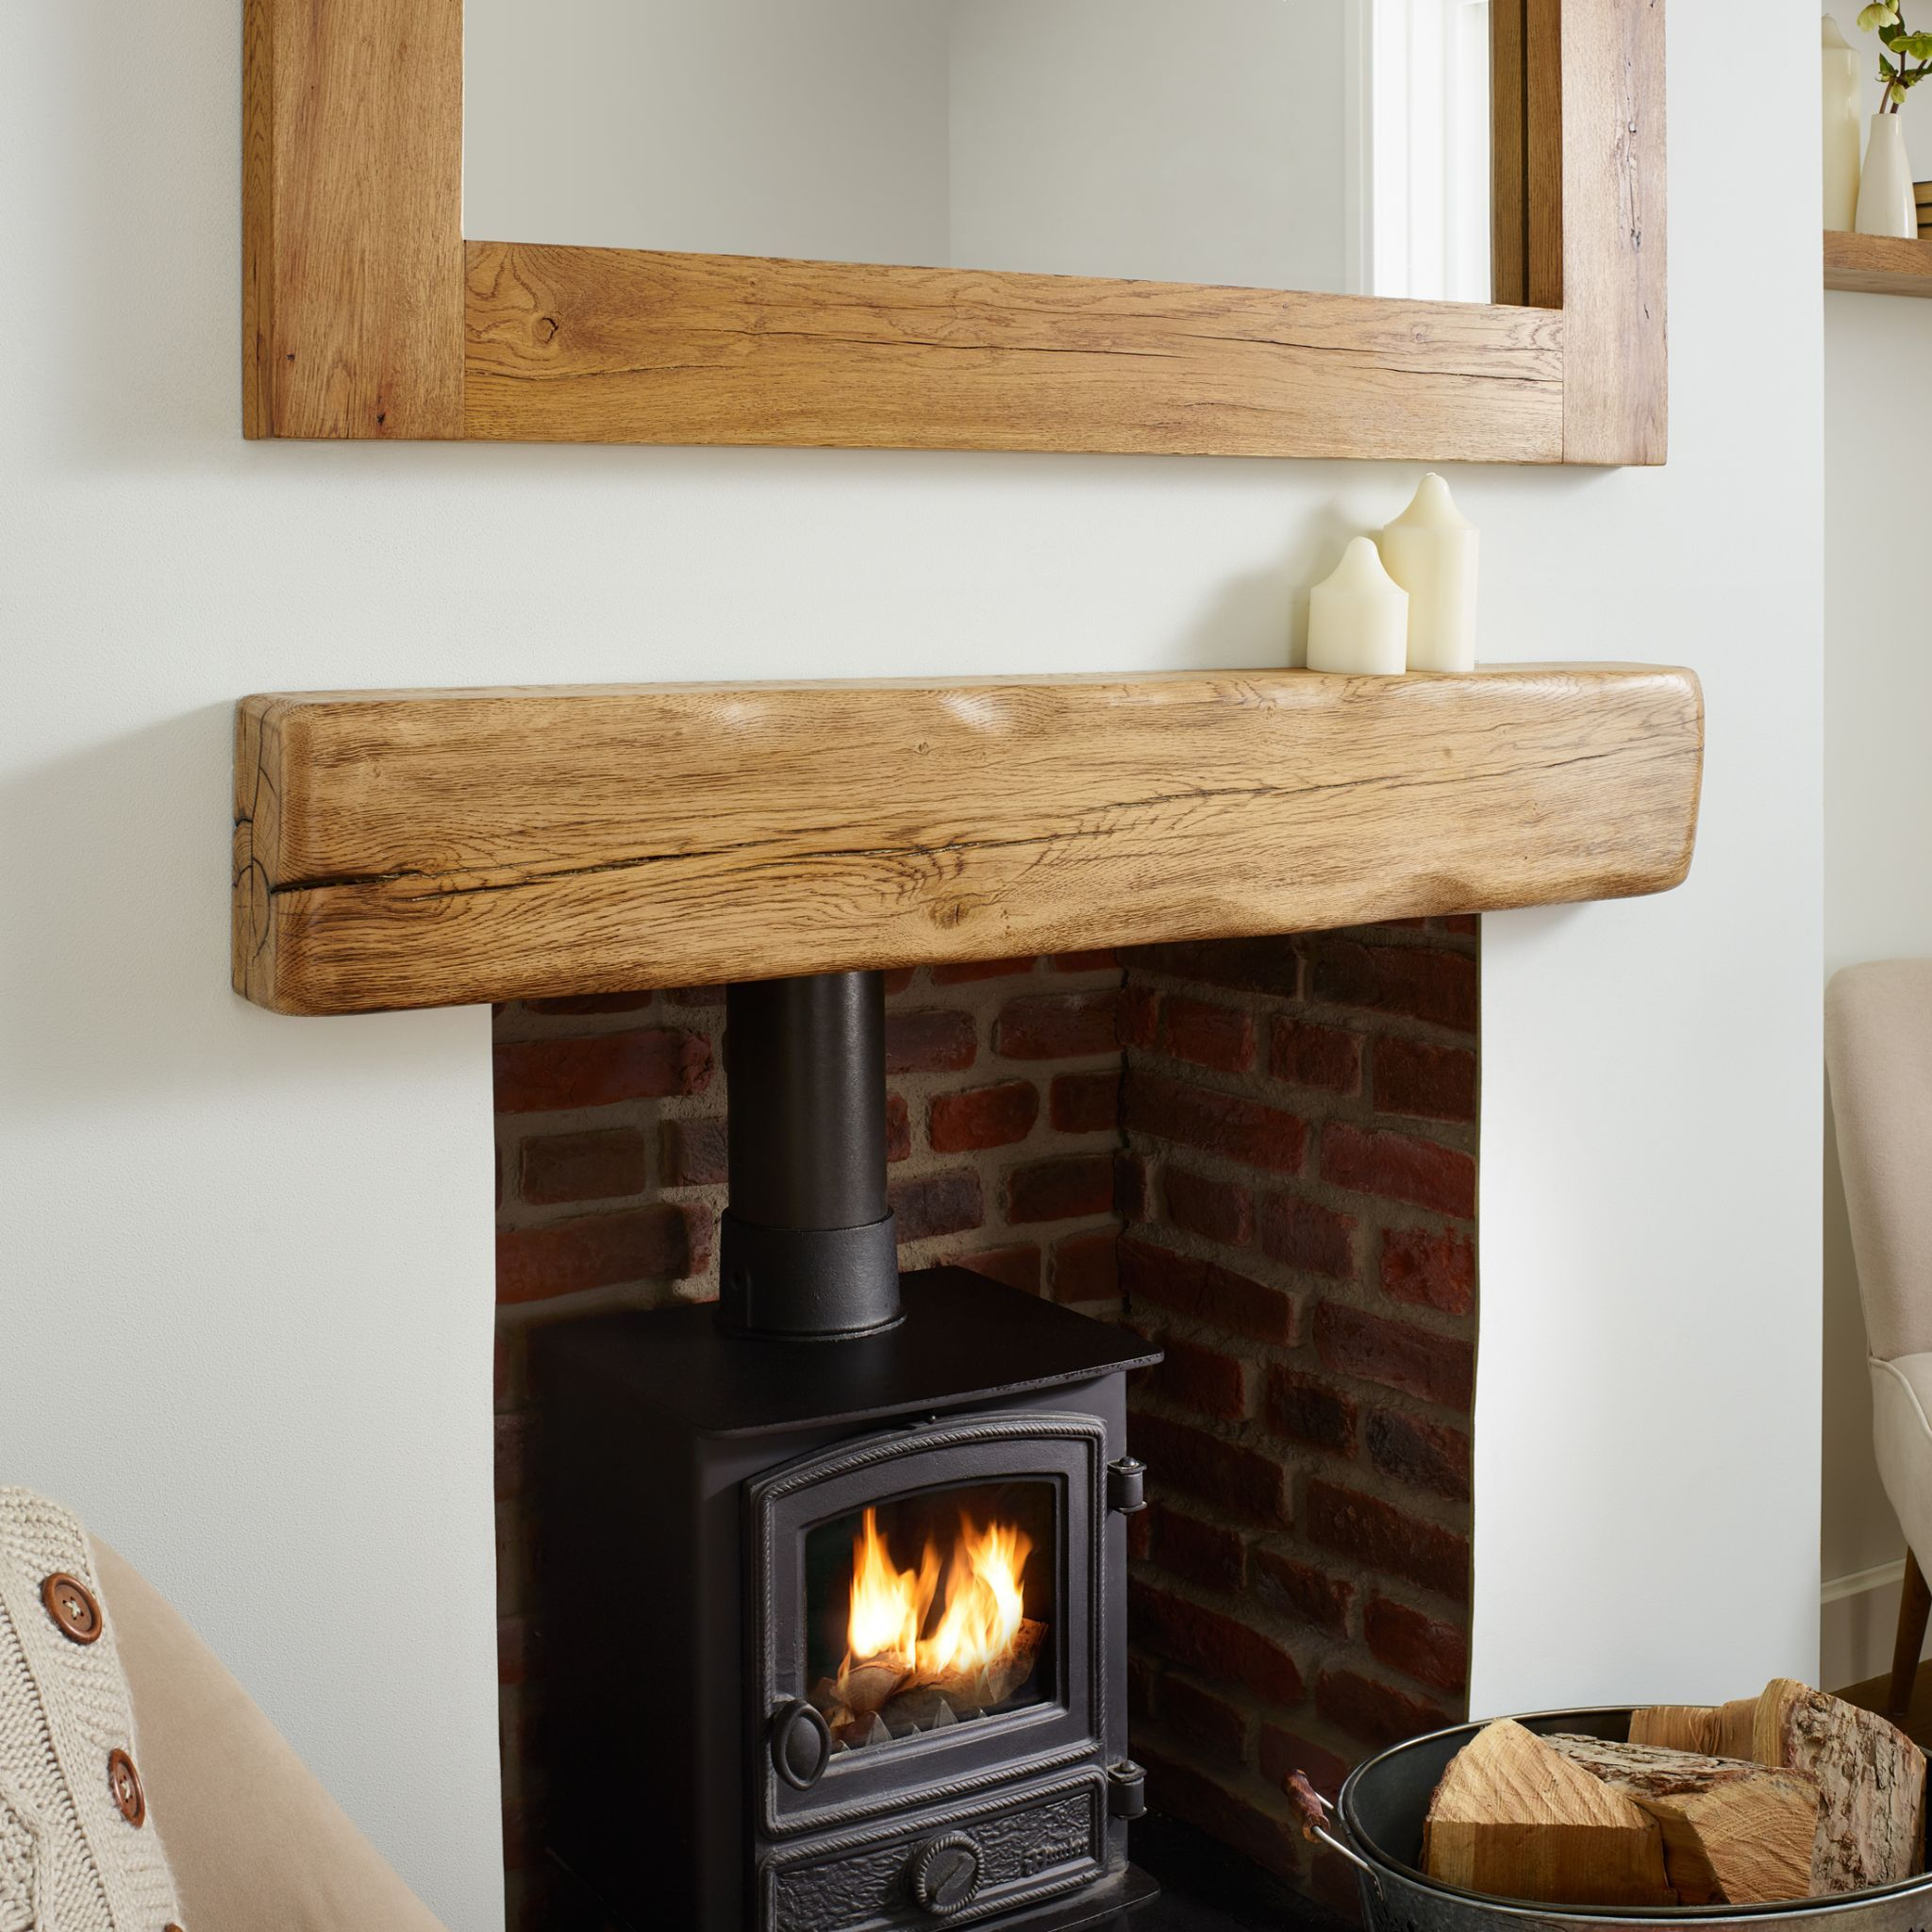 about the oak beam aged flamed mantel the aged and flamed oak